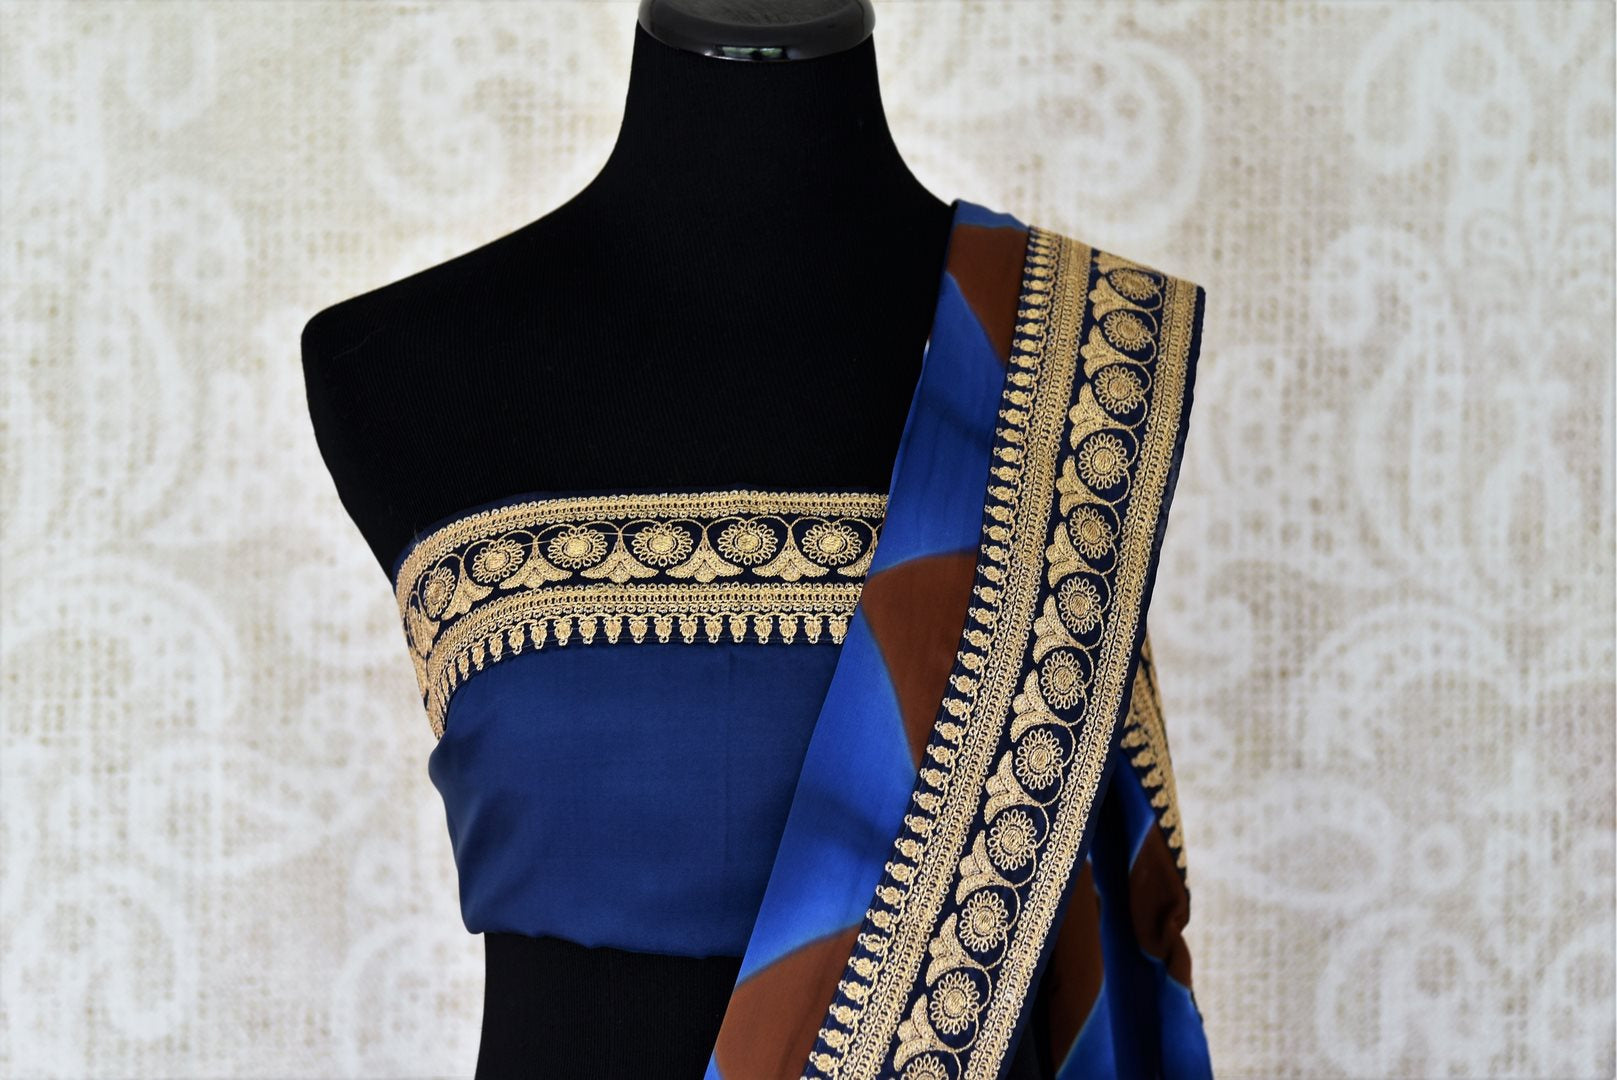 Buy designer blue crepe saree online in USA with embroidered border. Make your saree look absolutely one of a kind with Indian designer saris, bridal sarees, party sarees from Pure Elegance Indian clothing store in USA or shop online.-blouse pallu